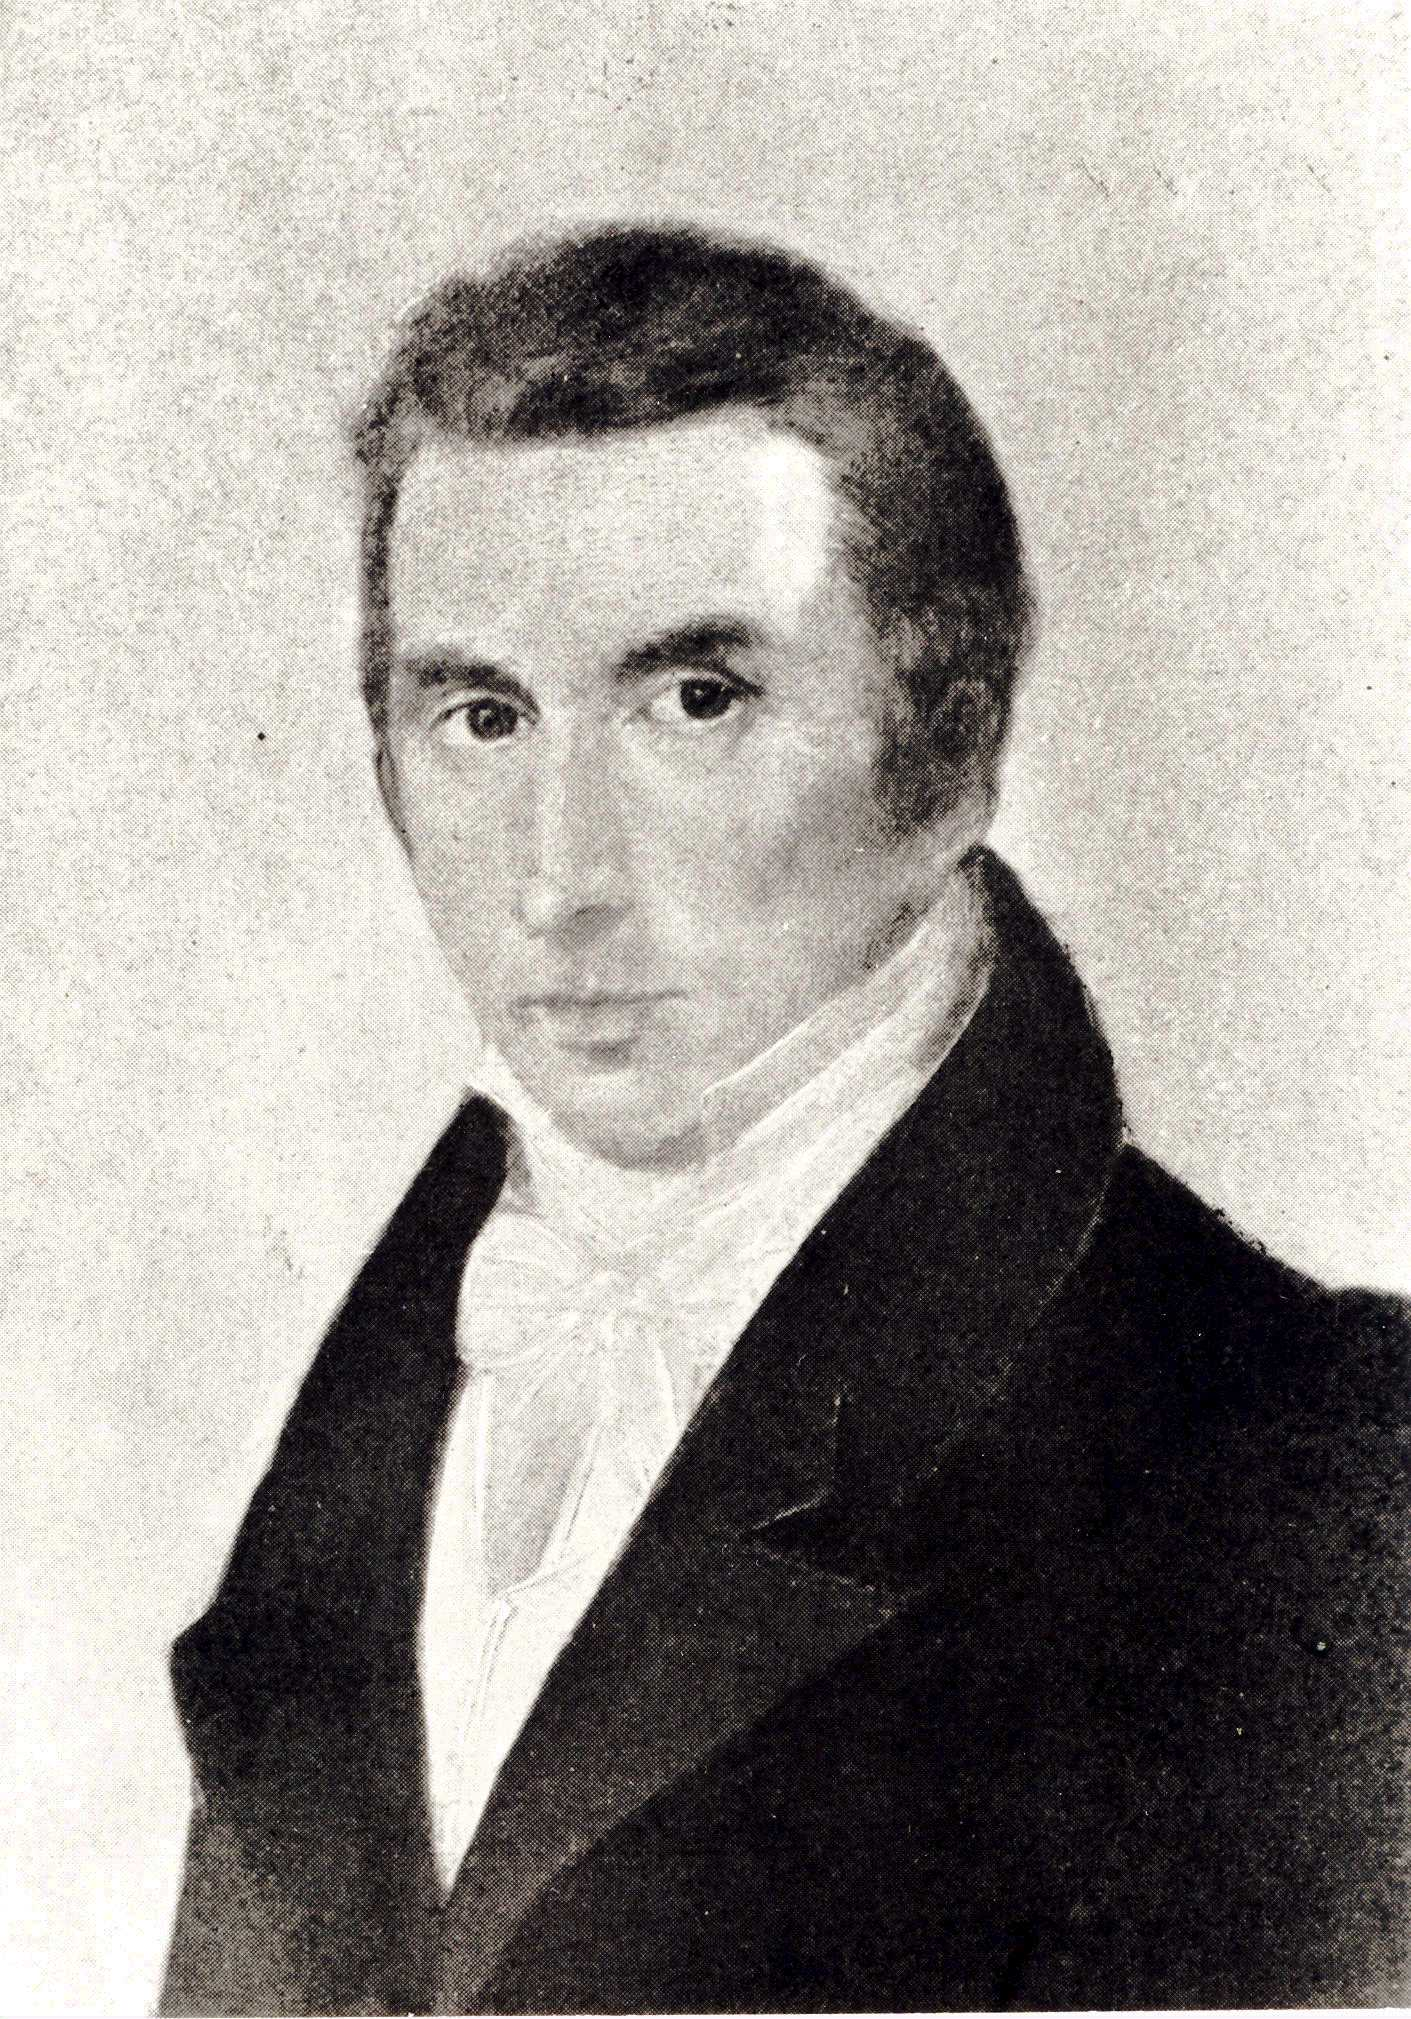 Chopin's father, [[Nicolas Chopin